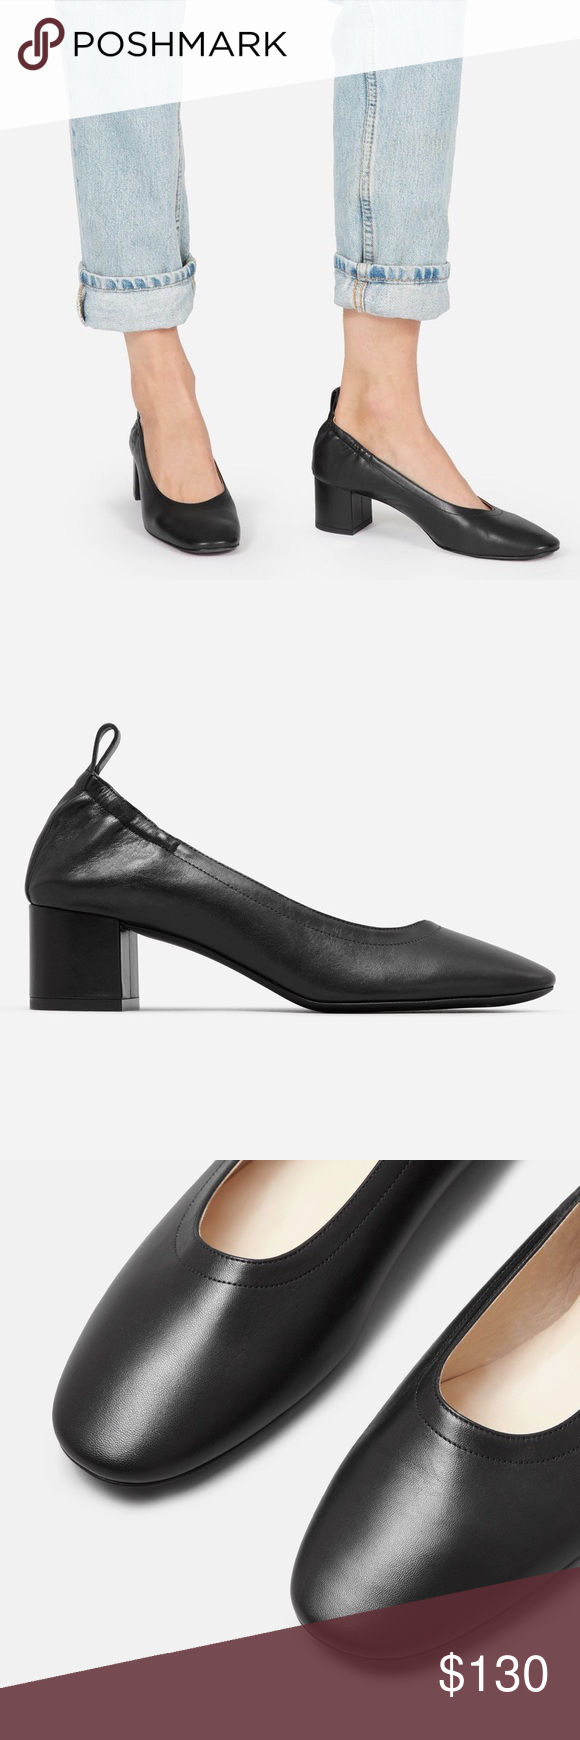 4d4d51b3cb75 Everlane Day Heel Black leather pumps NWT 5 Comes with box. Original  packaging. New